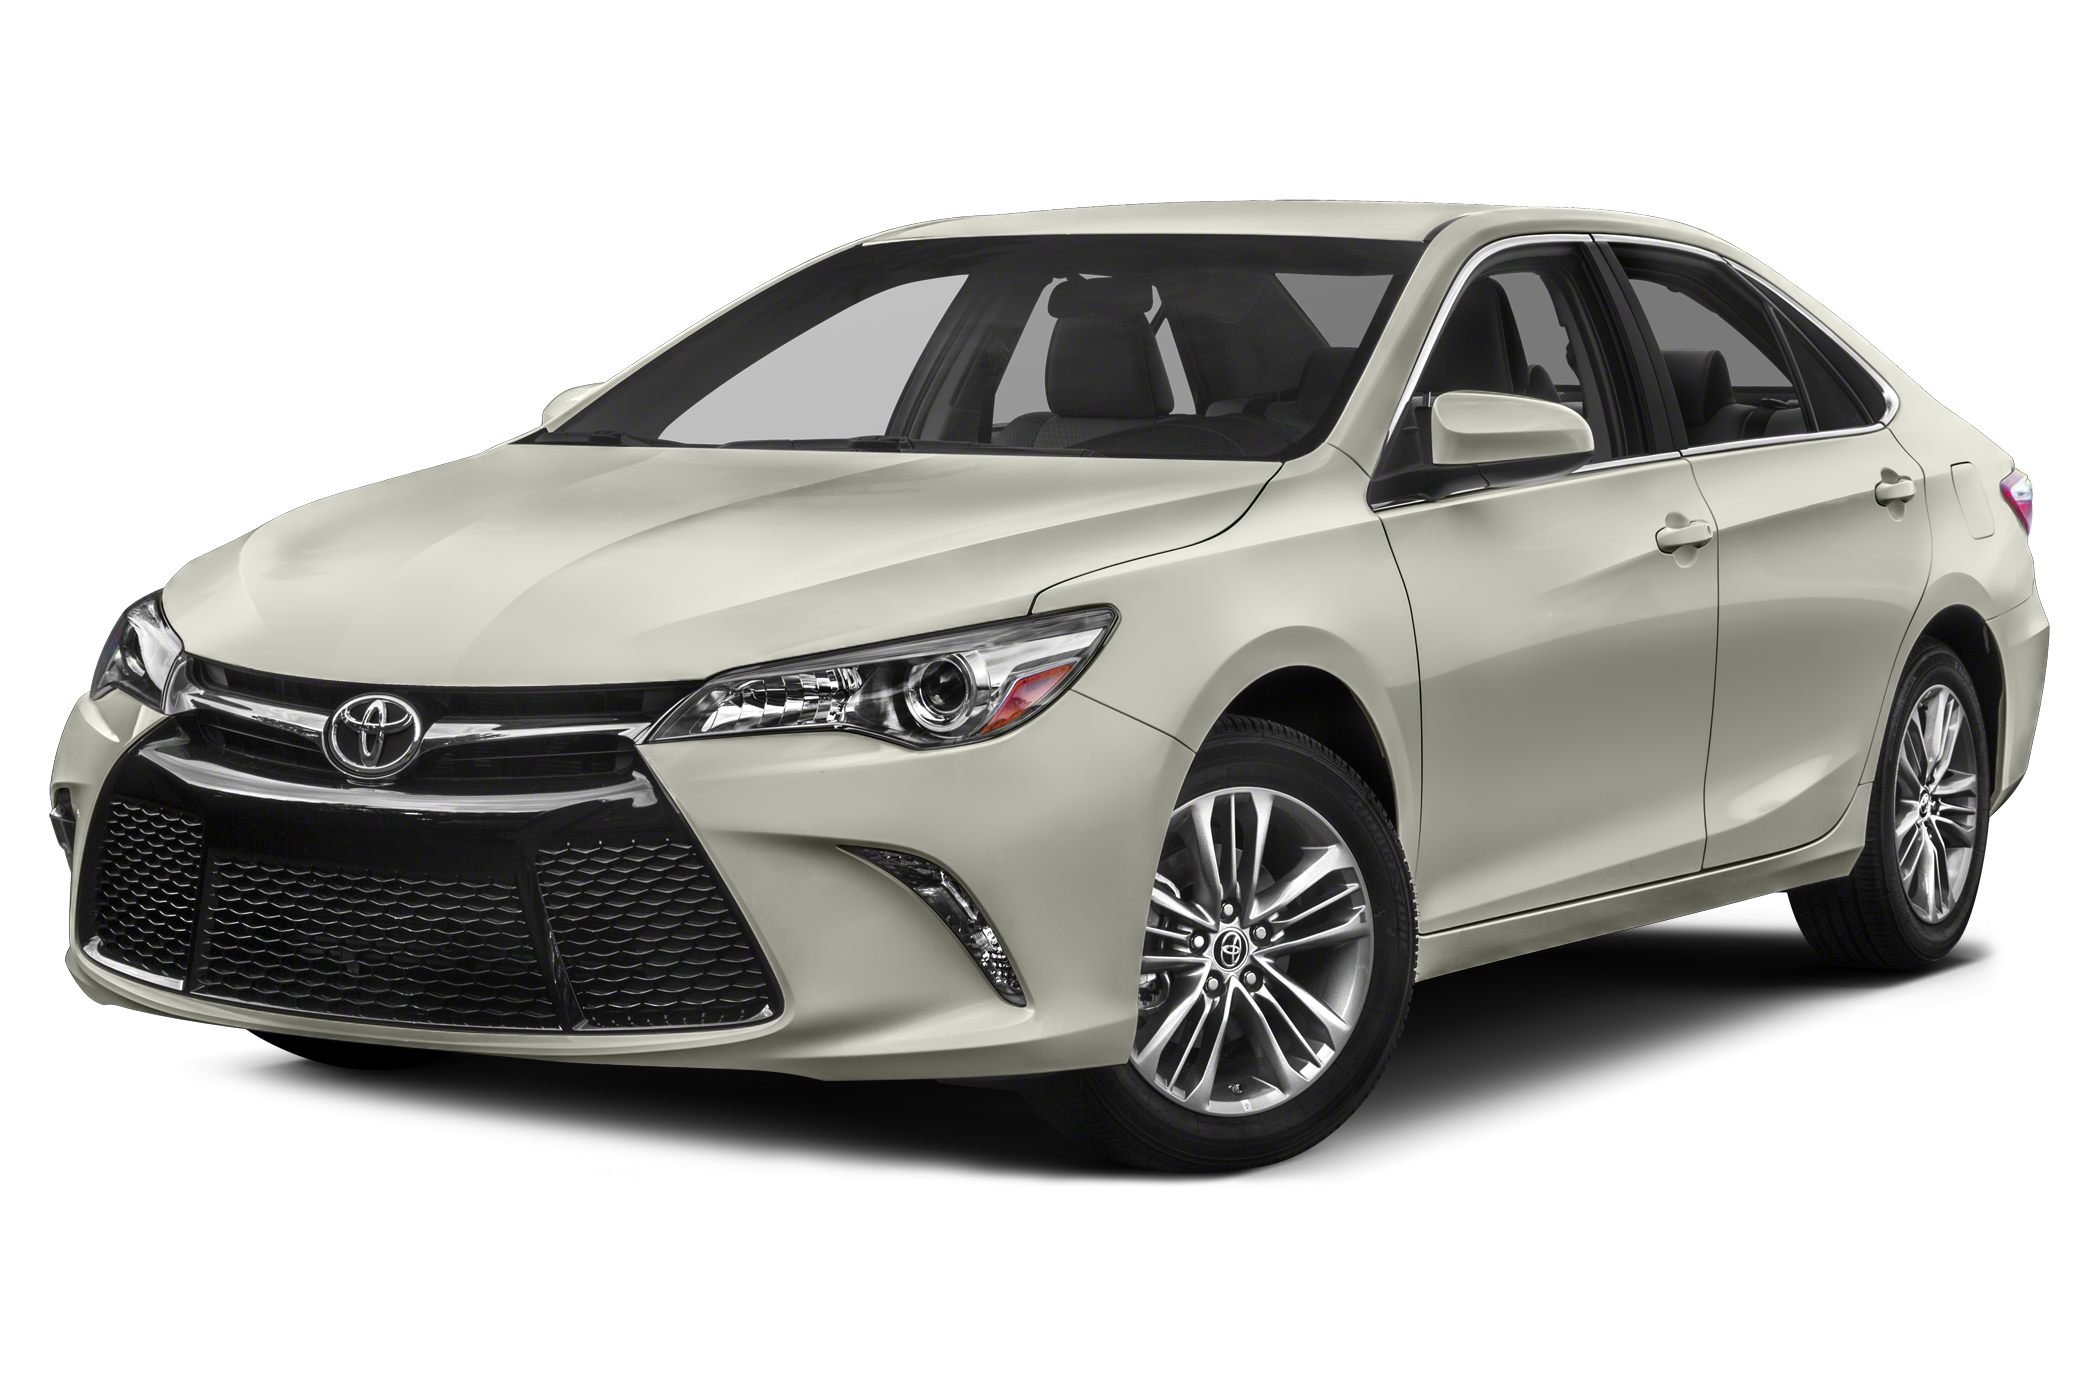 2015 Toyota Camry XSE Sedan for sale in Mentor for $28,510 with 0 miles.